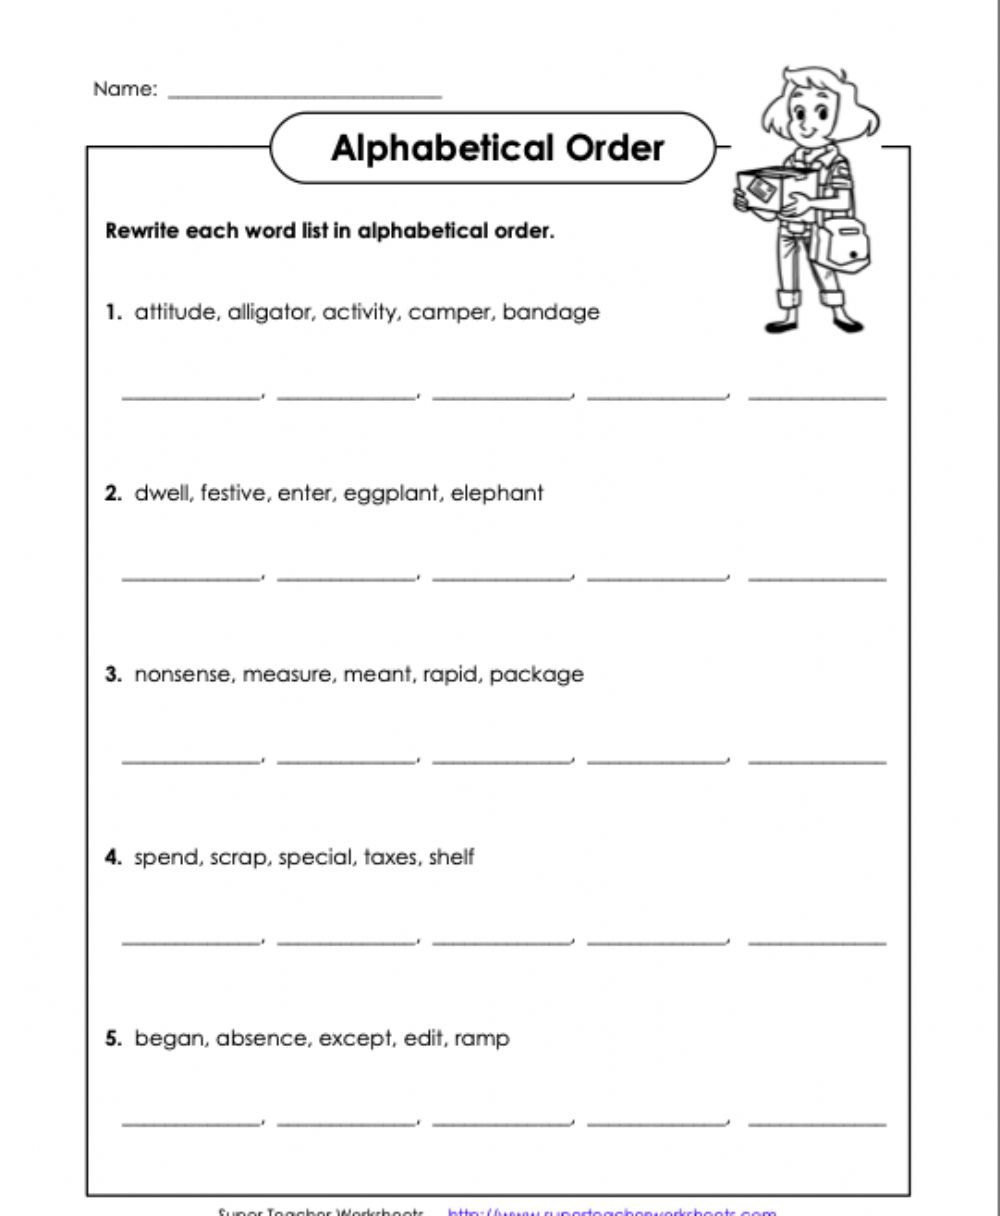 hight resolution of Alphabetical Order D1 5th Grade worksheet